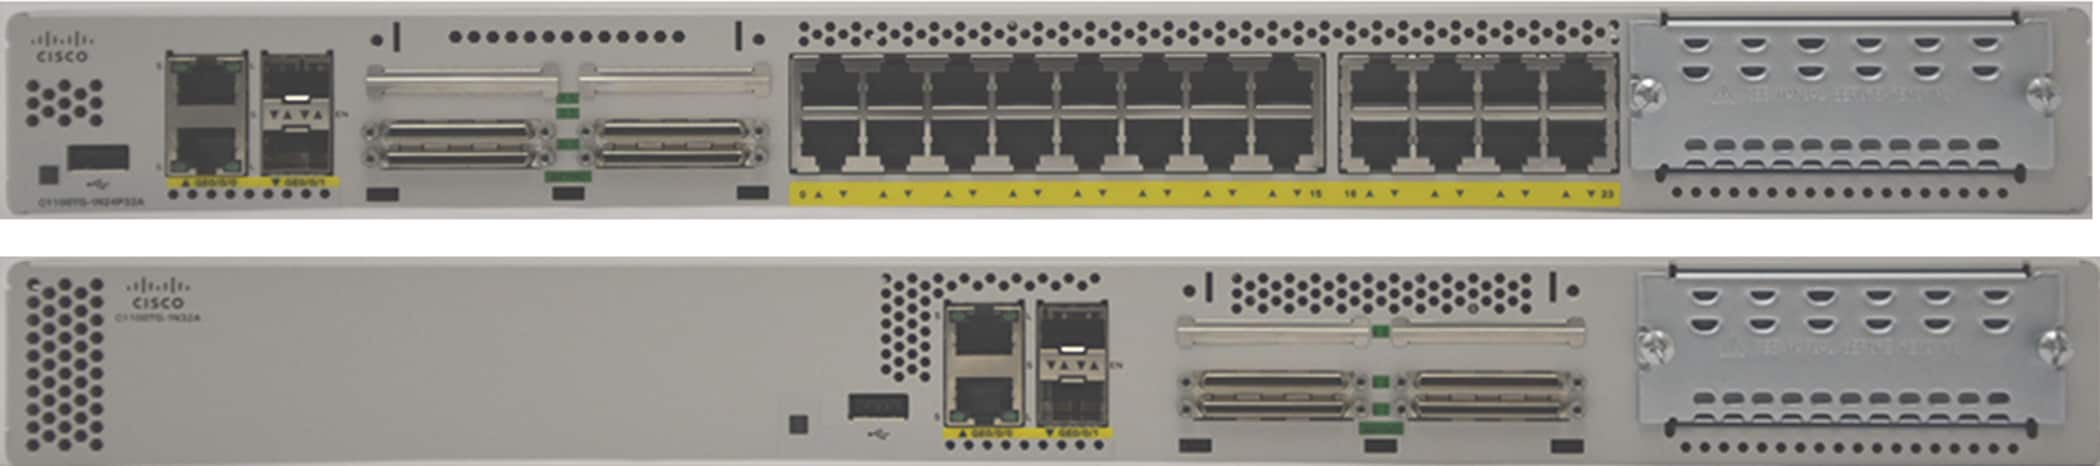 Cisco 1100 Terminal Services Gateway models